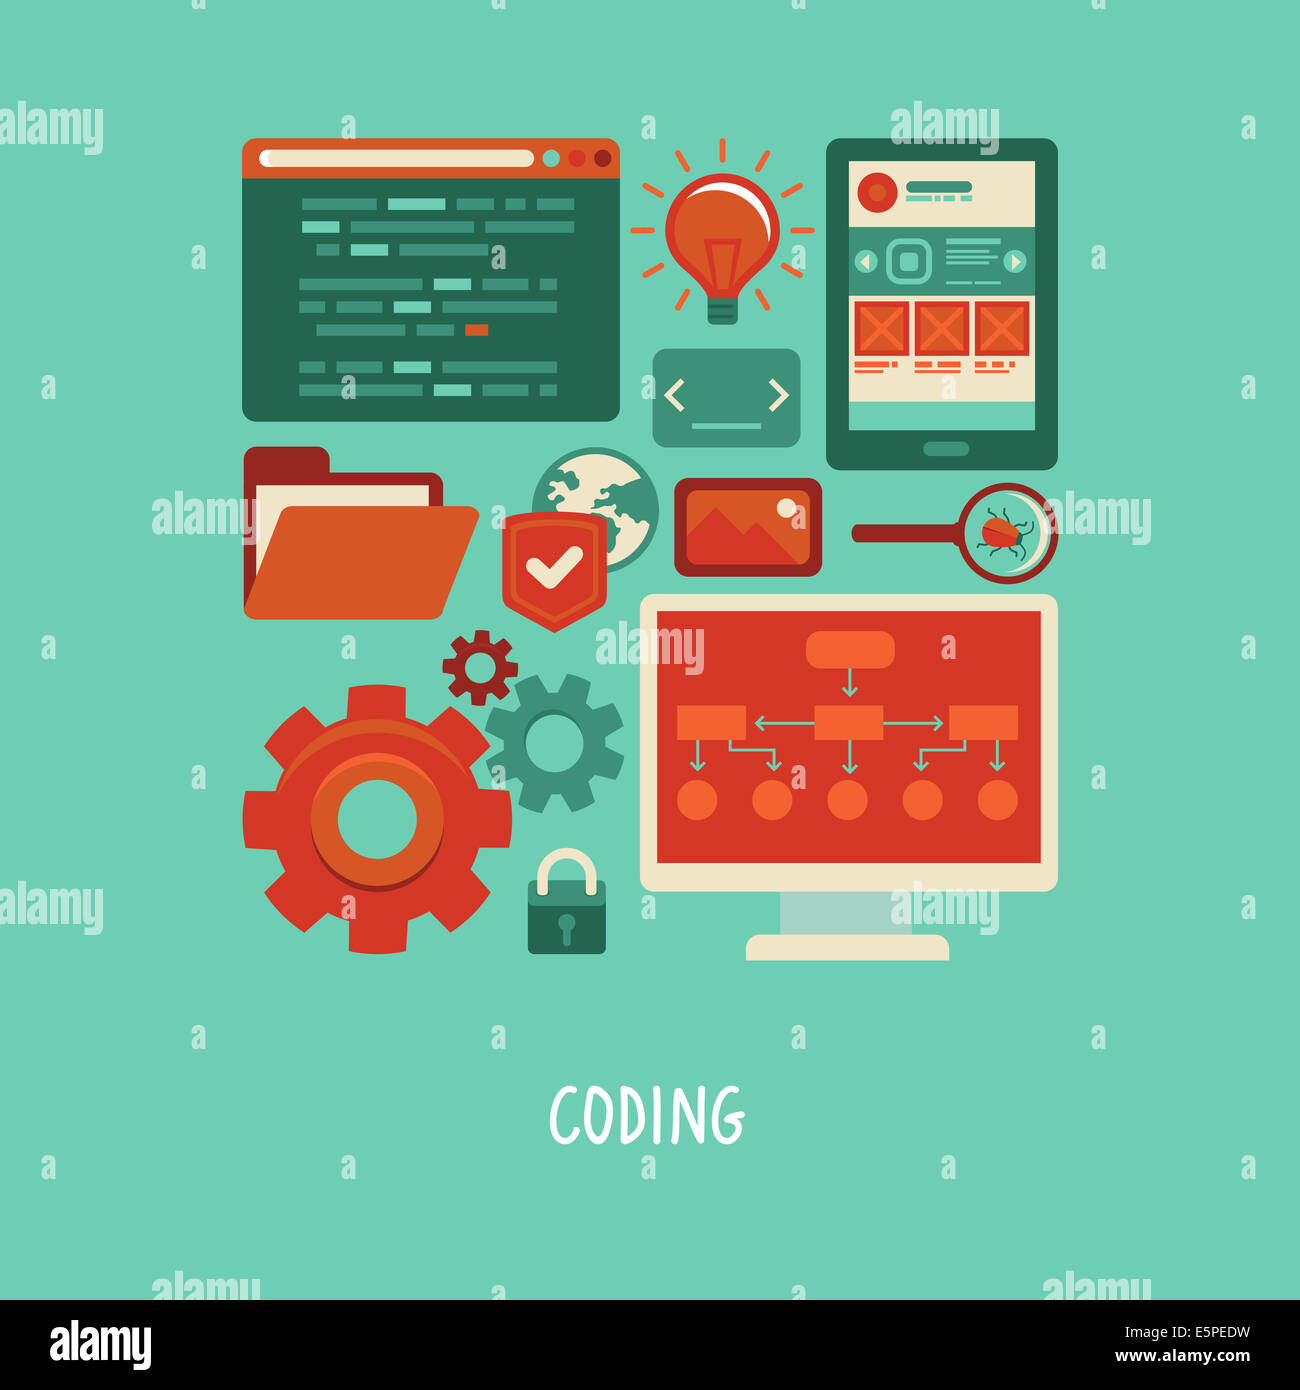 Concept in flat style with trendy icons - website development and coding. Tools and symbols - programming and prototyping - Stock Image